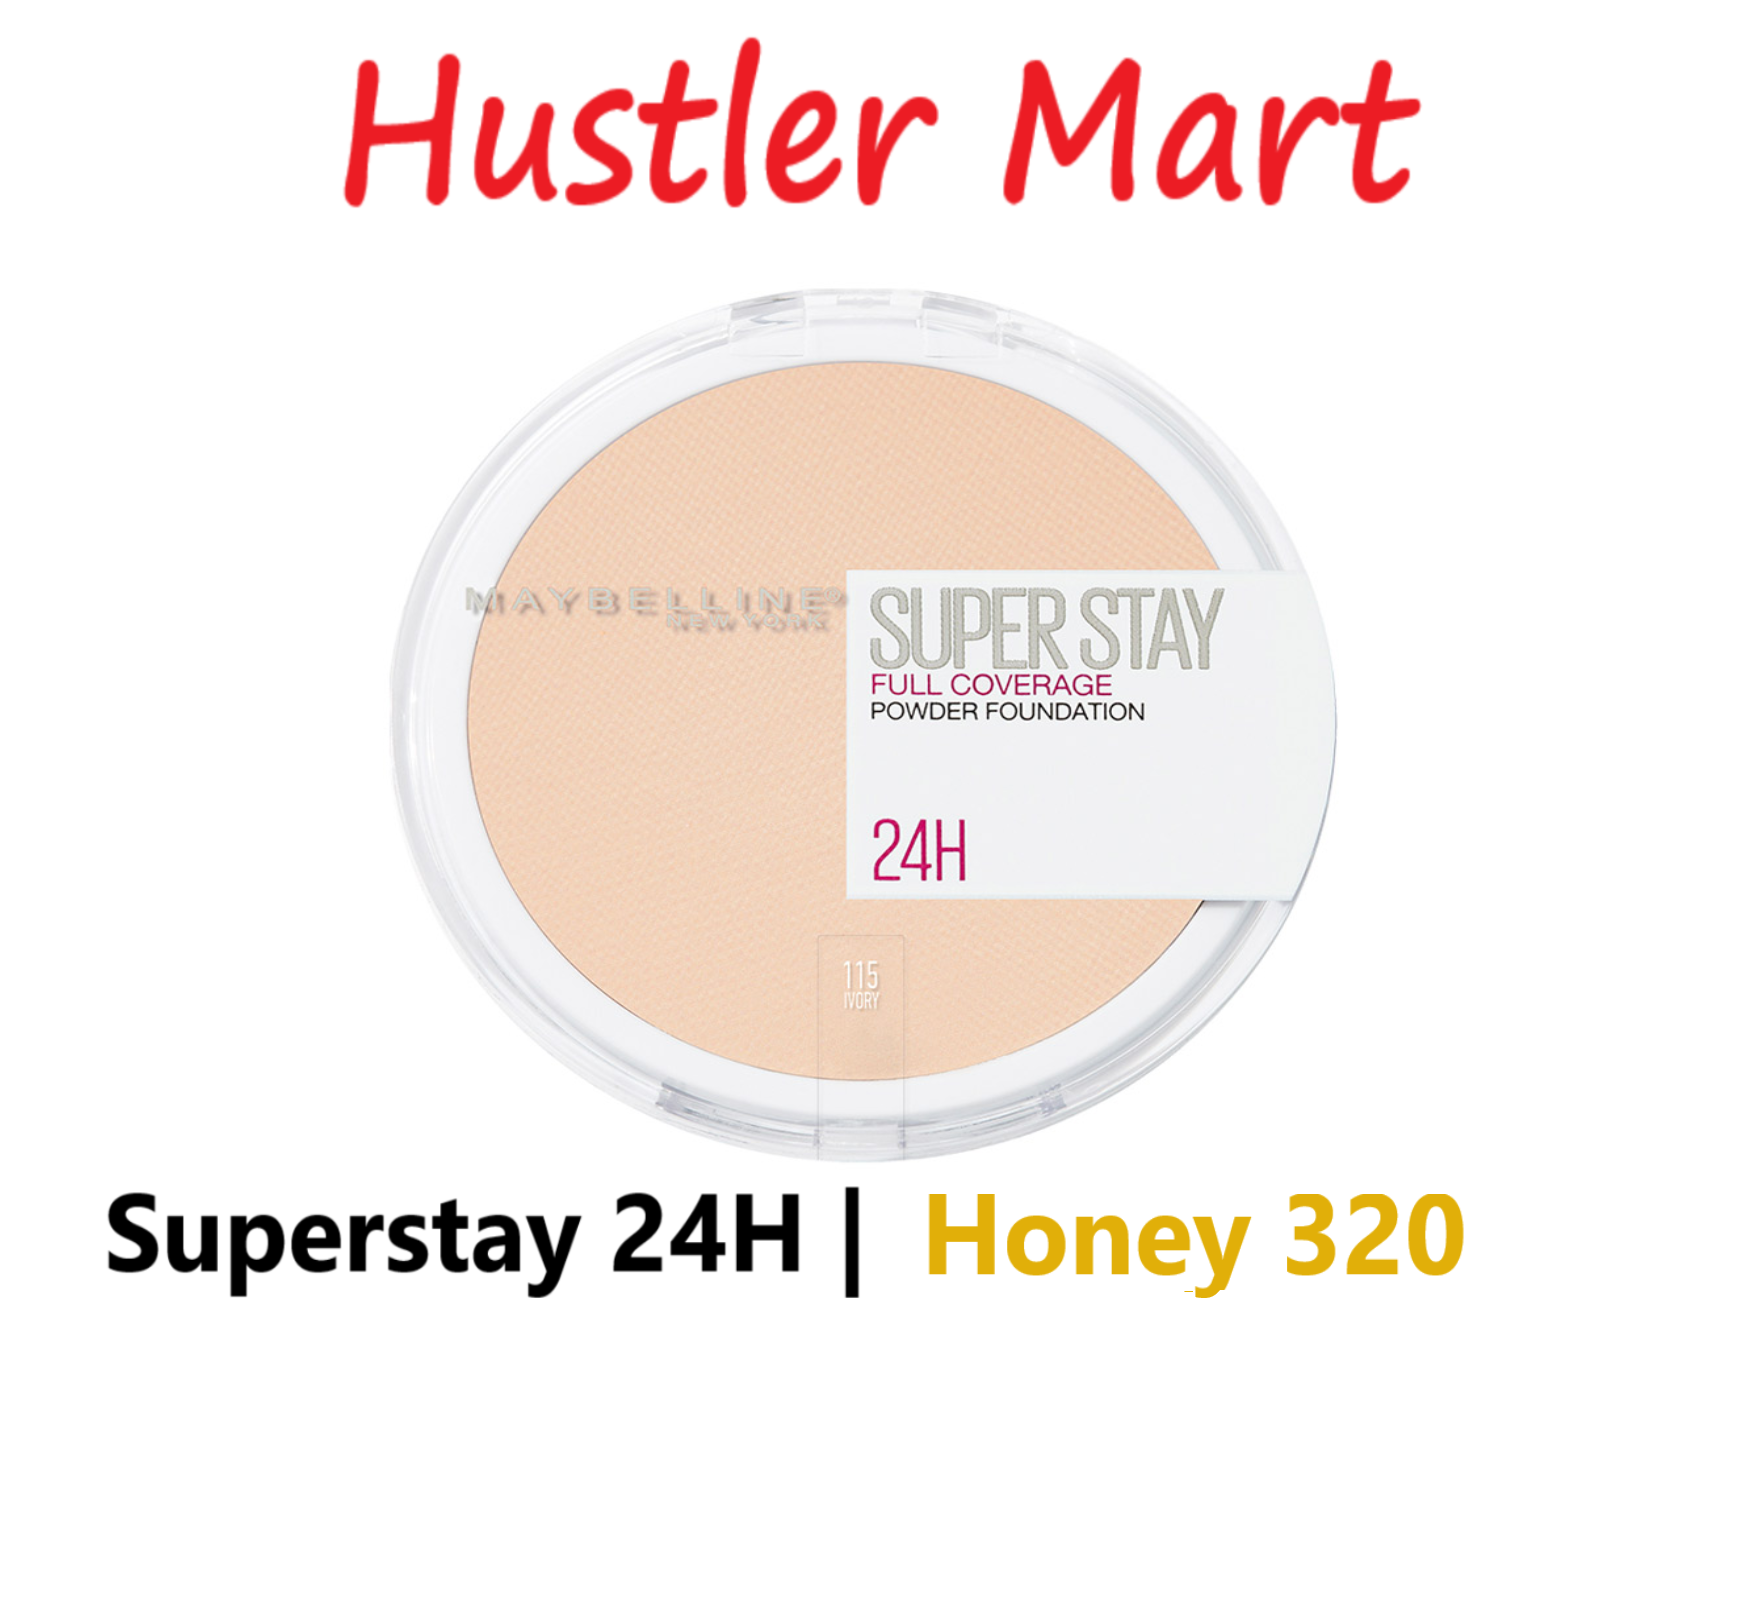 Maybelline Superstay 24H Full Coverage Powder Foundation - Honey 320